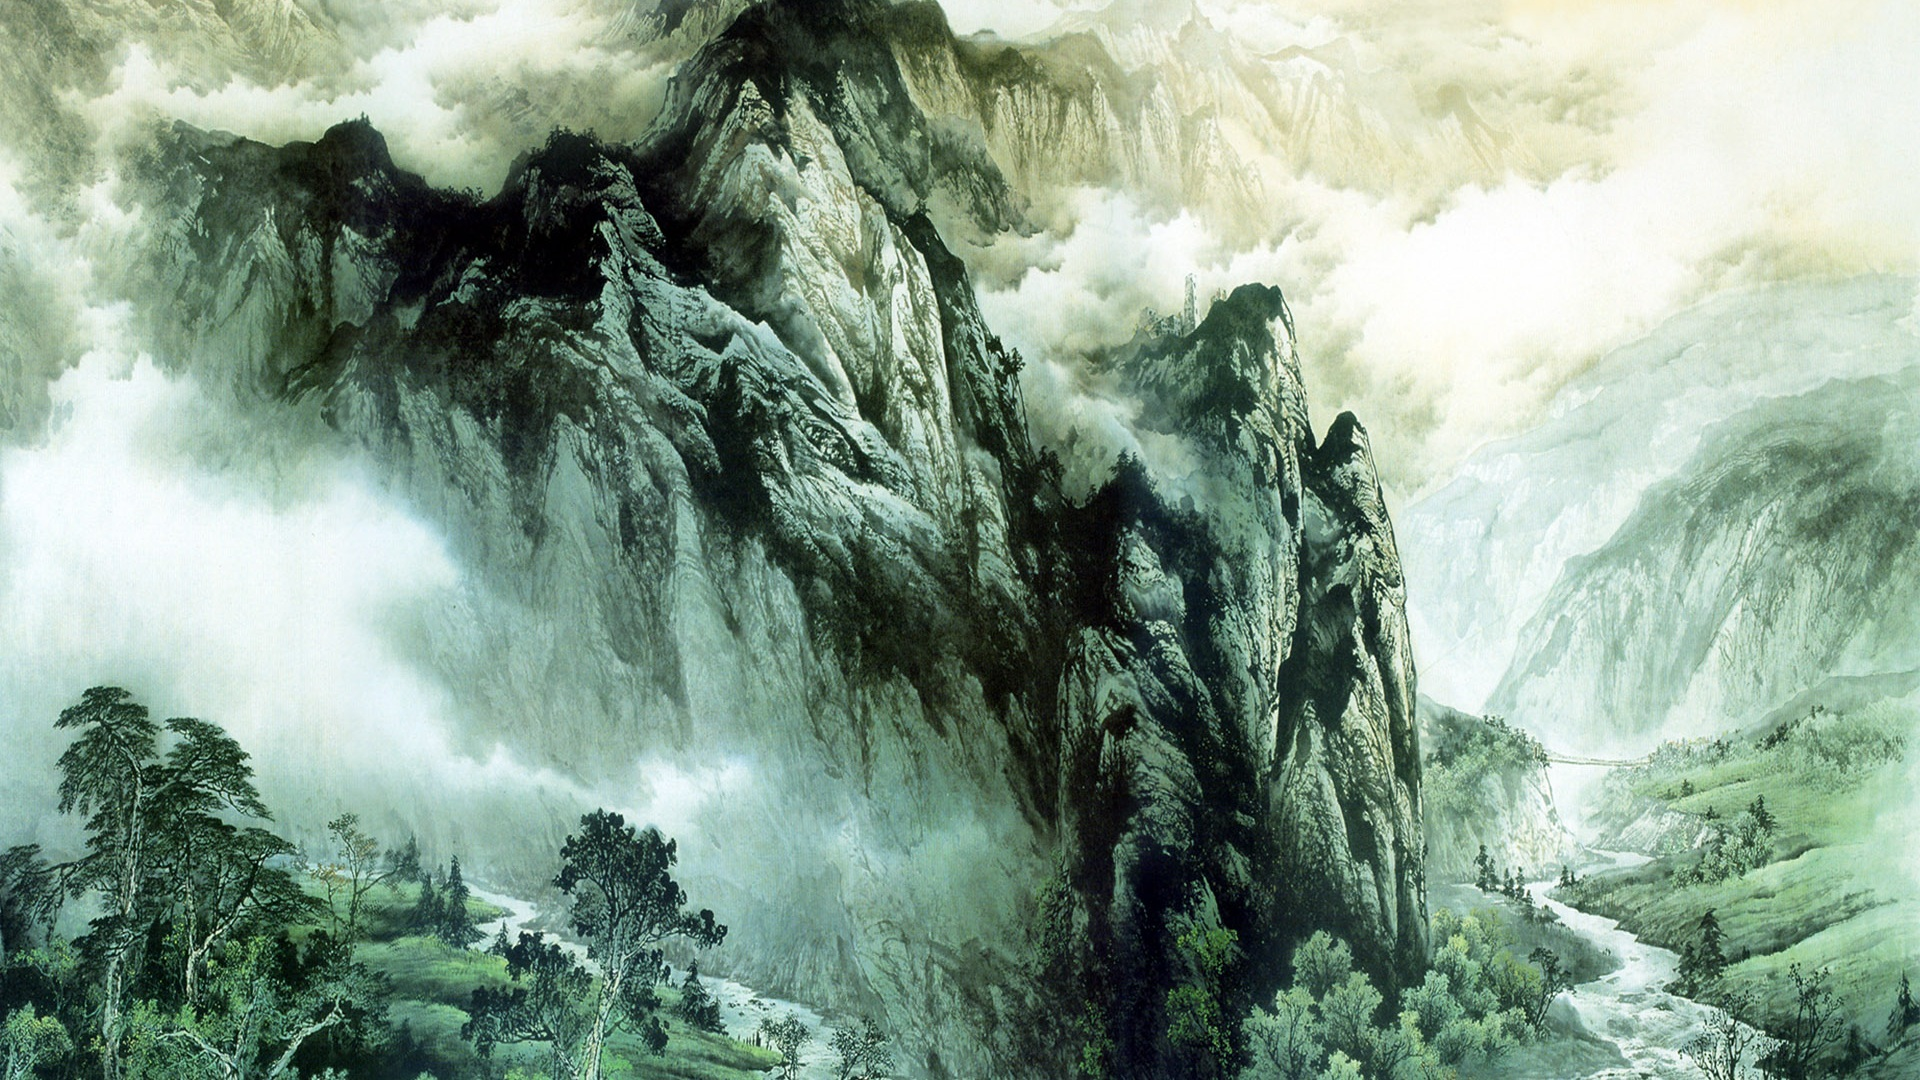 Wallpaper download chinese ink painting mountains and rivers wallpaper